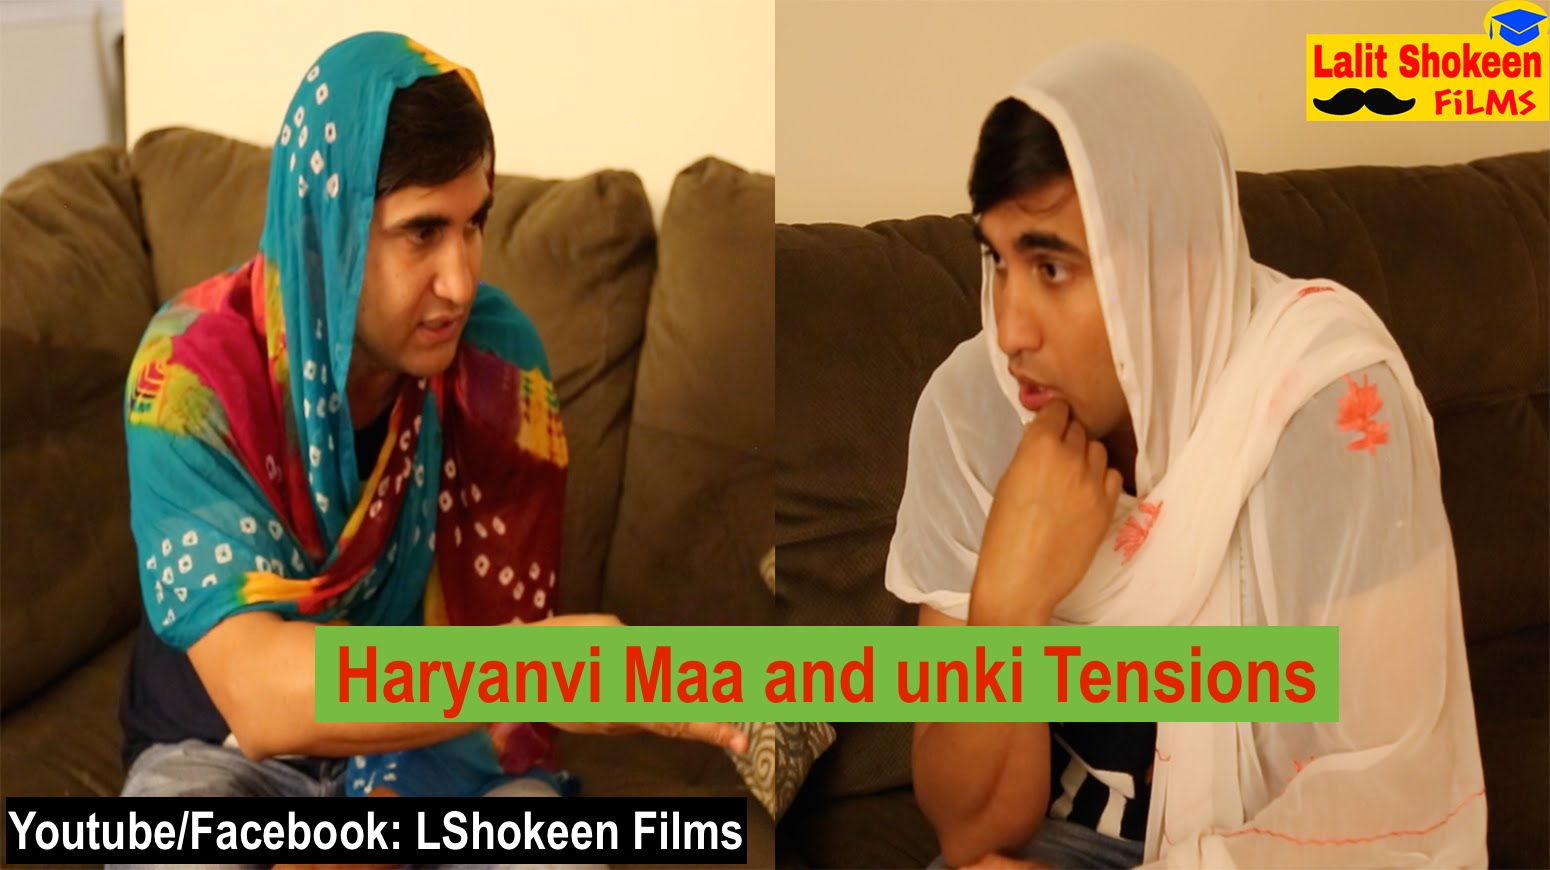 Haryanvi Maa and unki Tensions  By  Lalit Shokeen